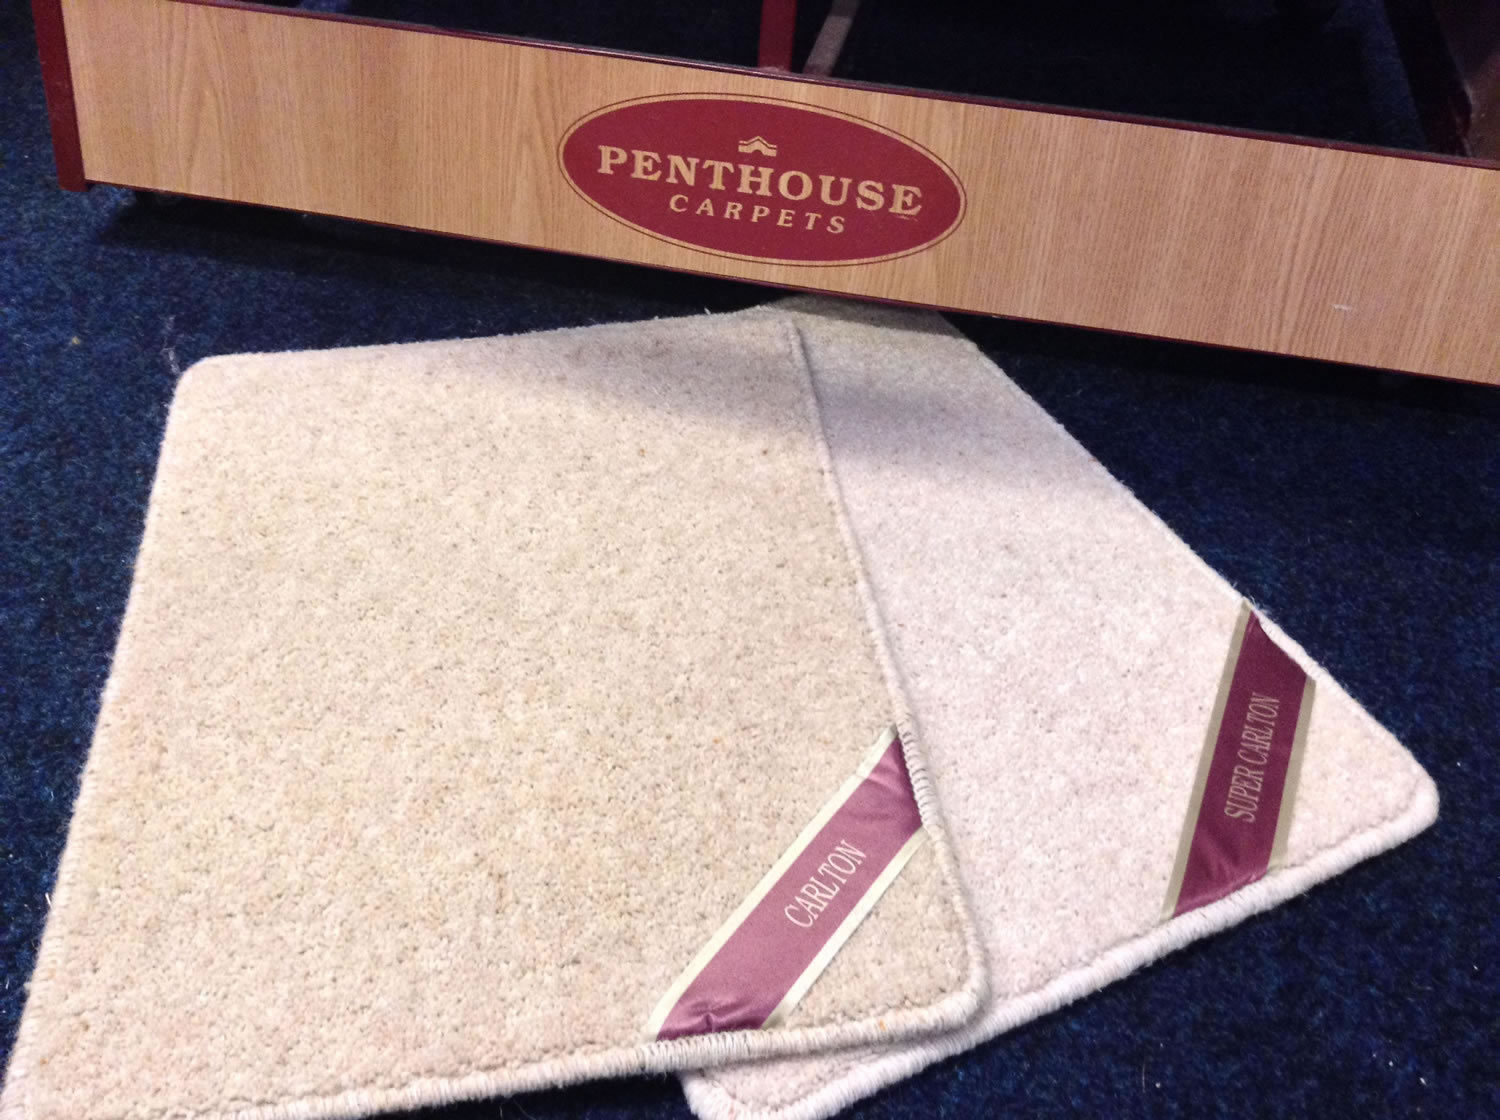 Gaskin - Penthouse Carpets P Pic One wool